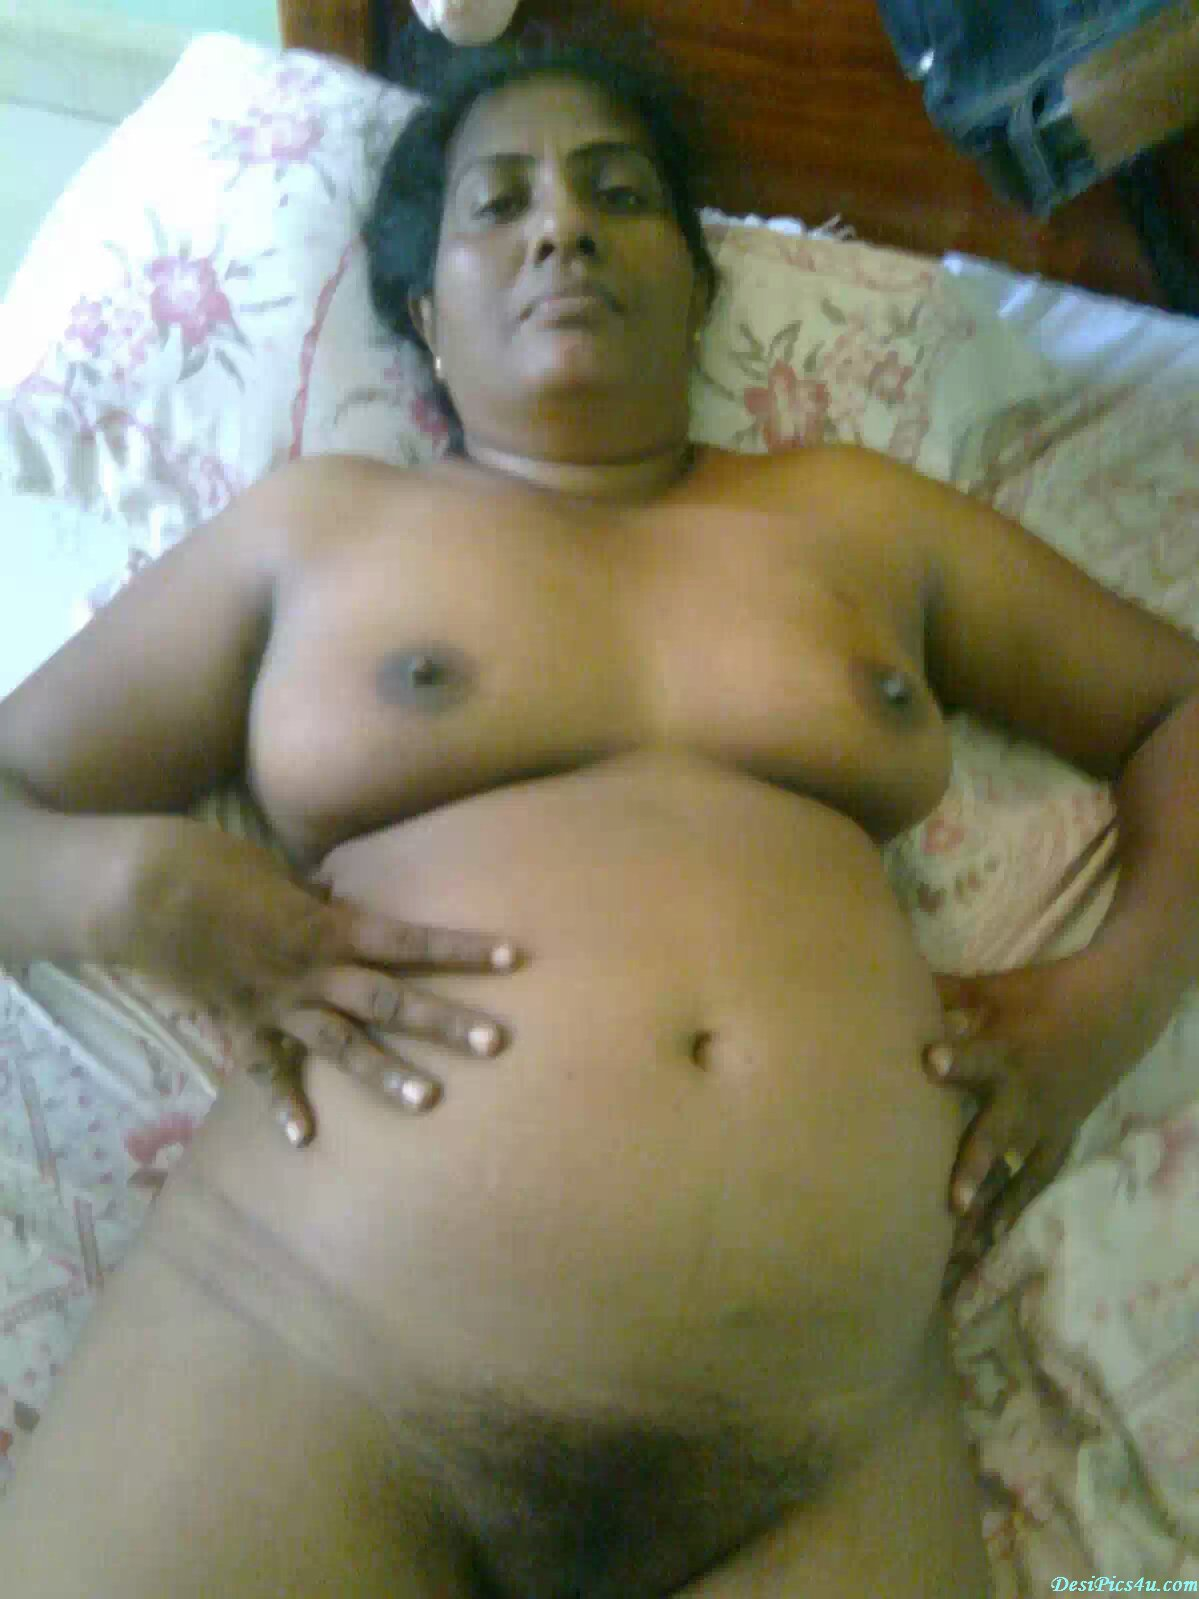 Old aunty nude photo. co. in